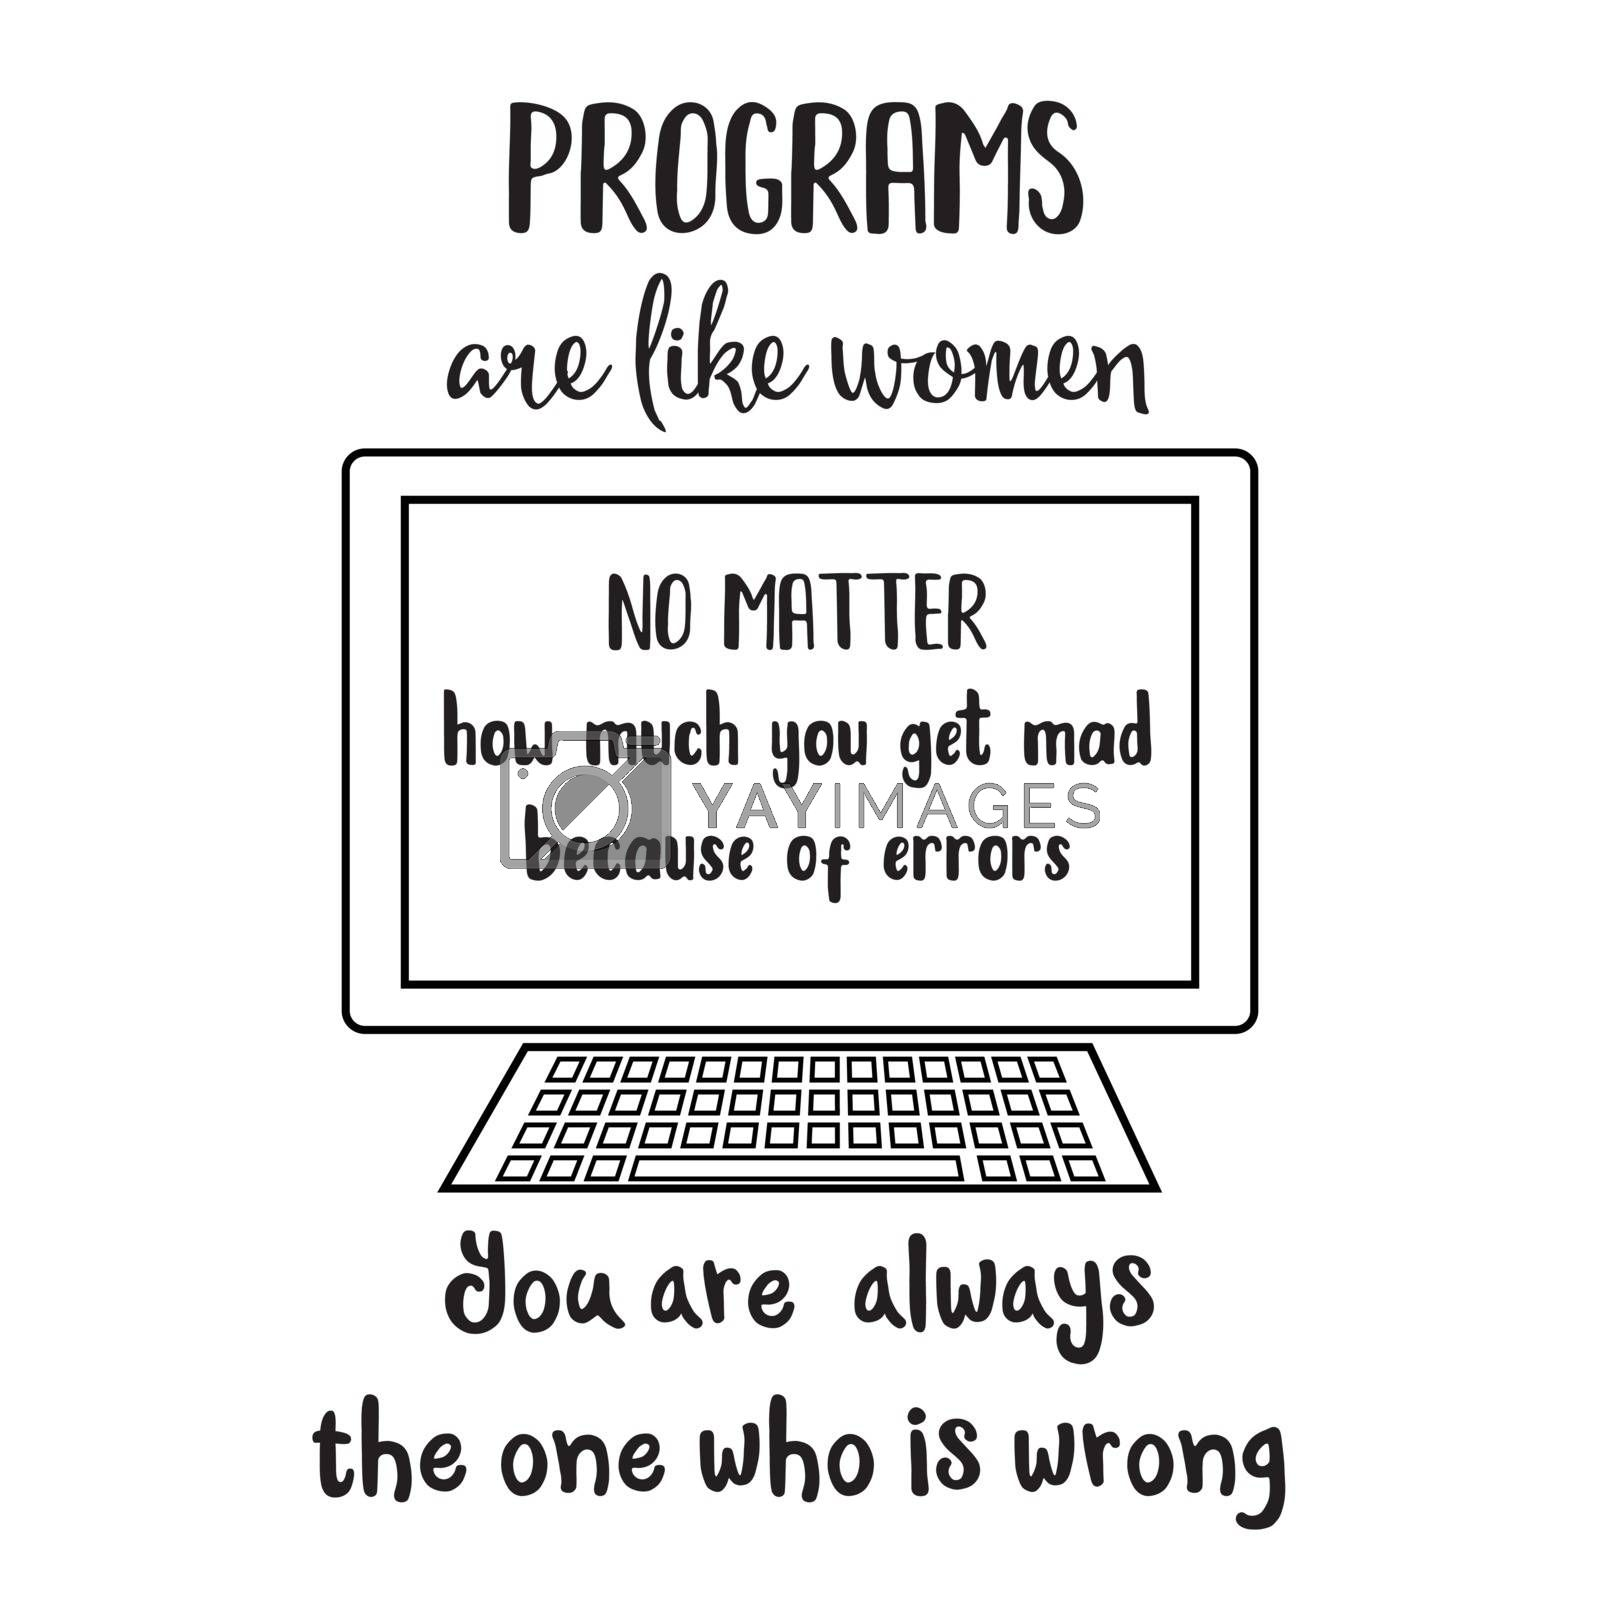 Funny quote about computer programs and women. Typography joke